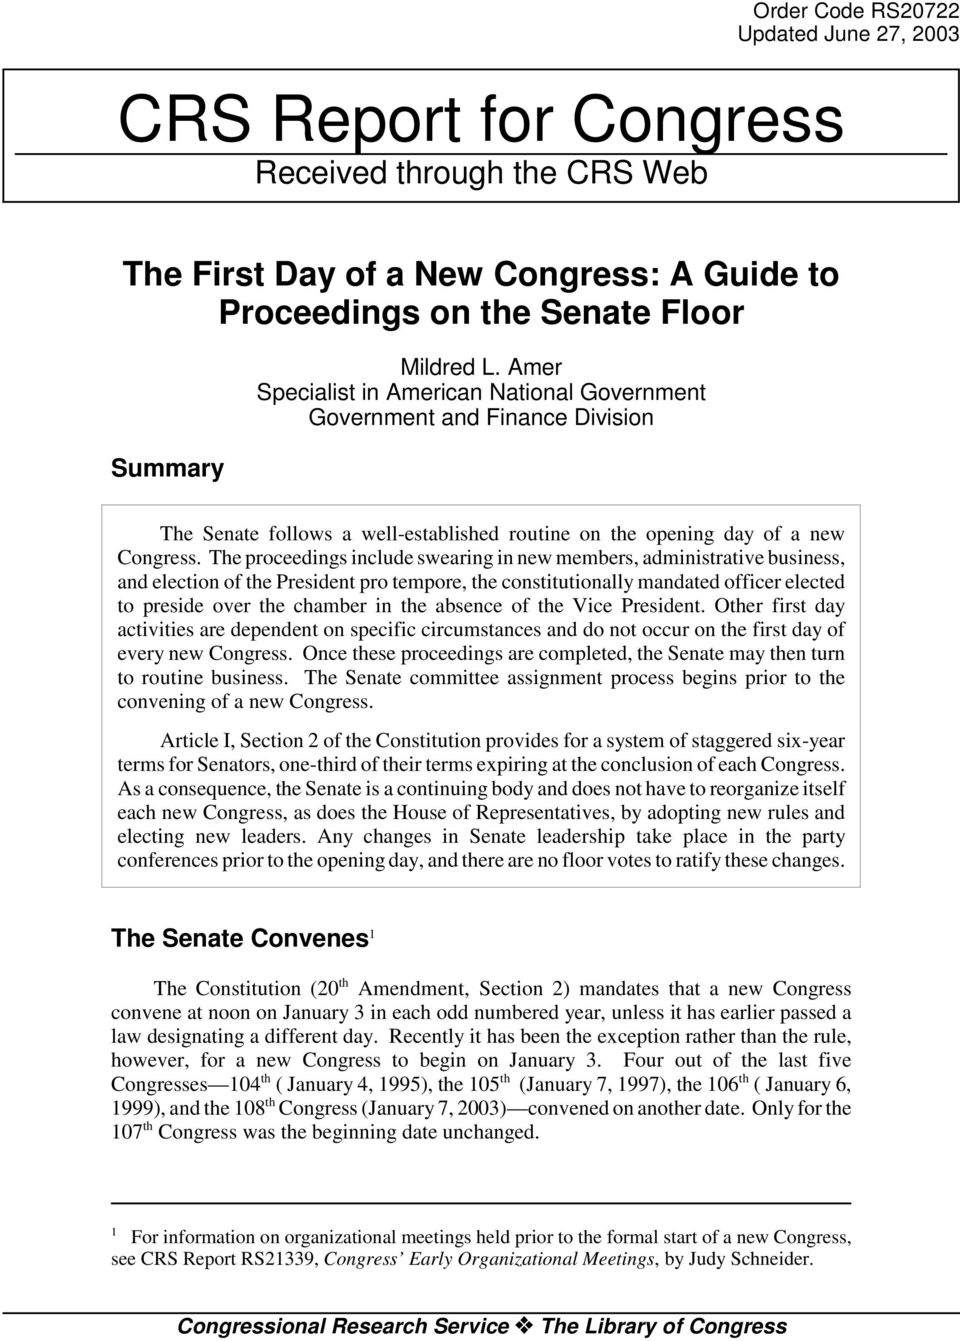 The proceedings include swearing in new members, administrative business, and election of the President pro tempore, the constitutionally mandated officer elected to preside over the chamber in the